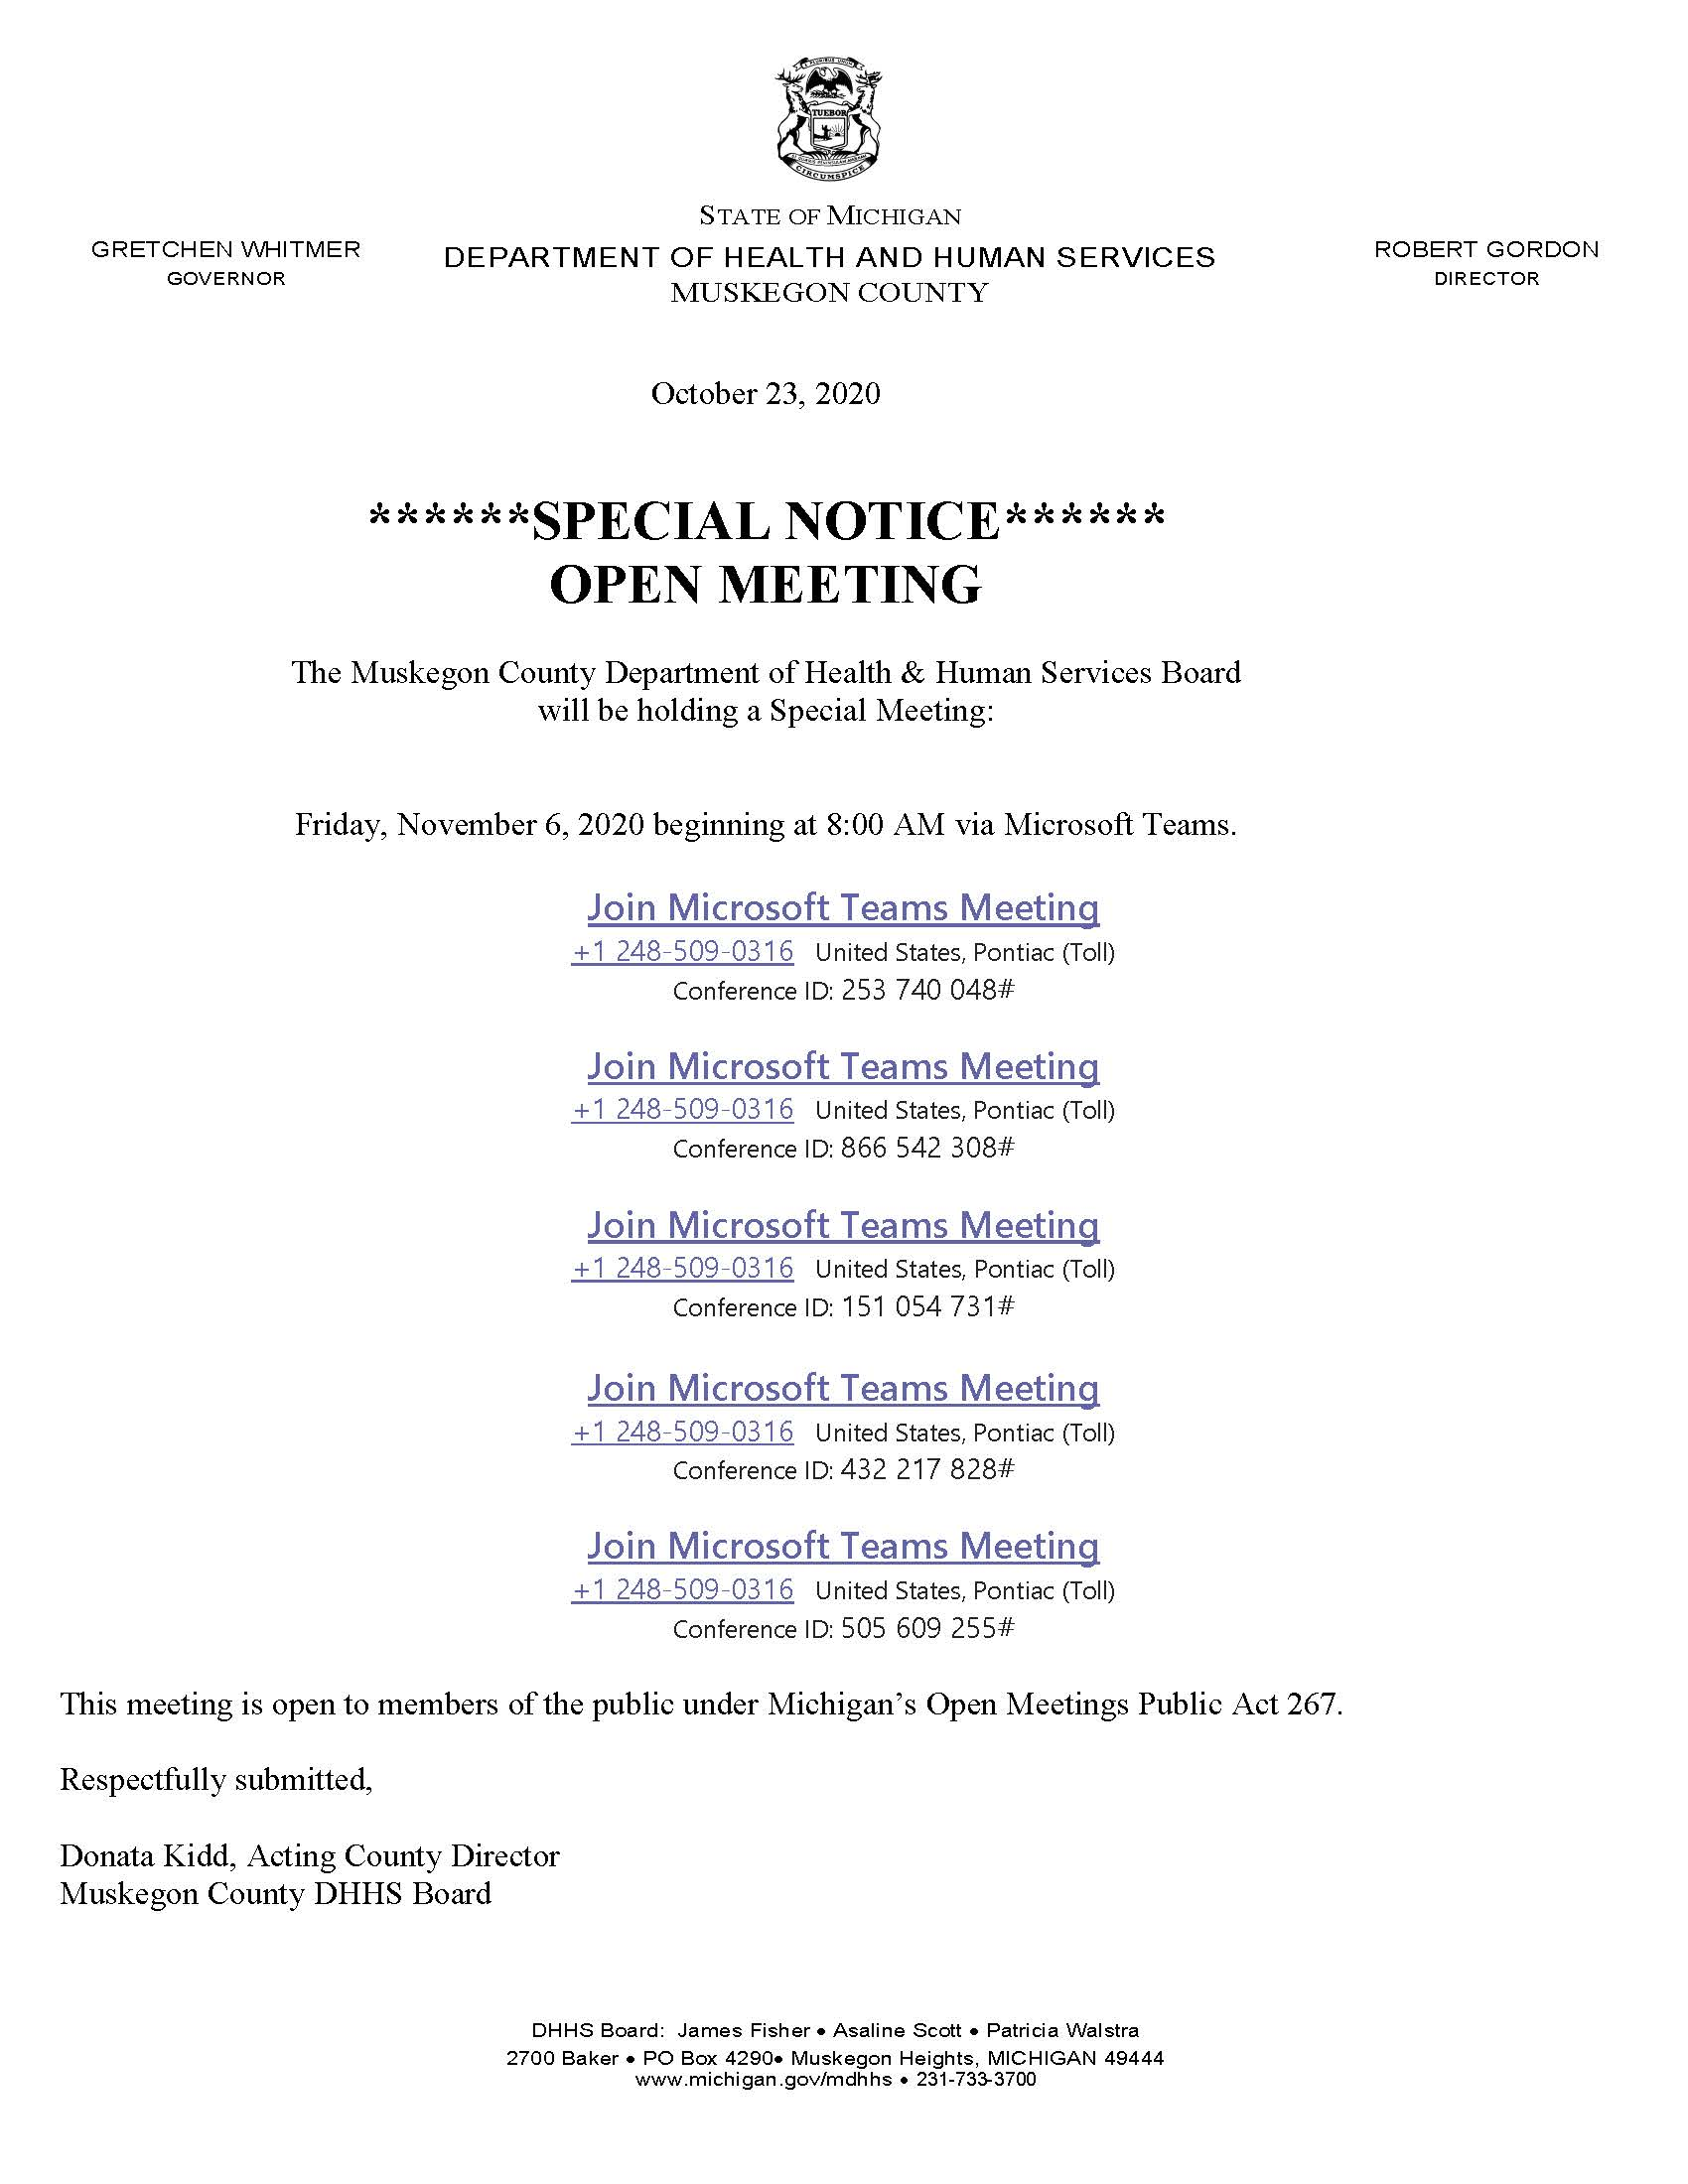 Memo Public Notice of DHHS Board Meeting-November 6 2020